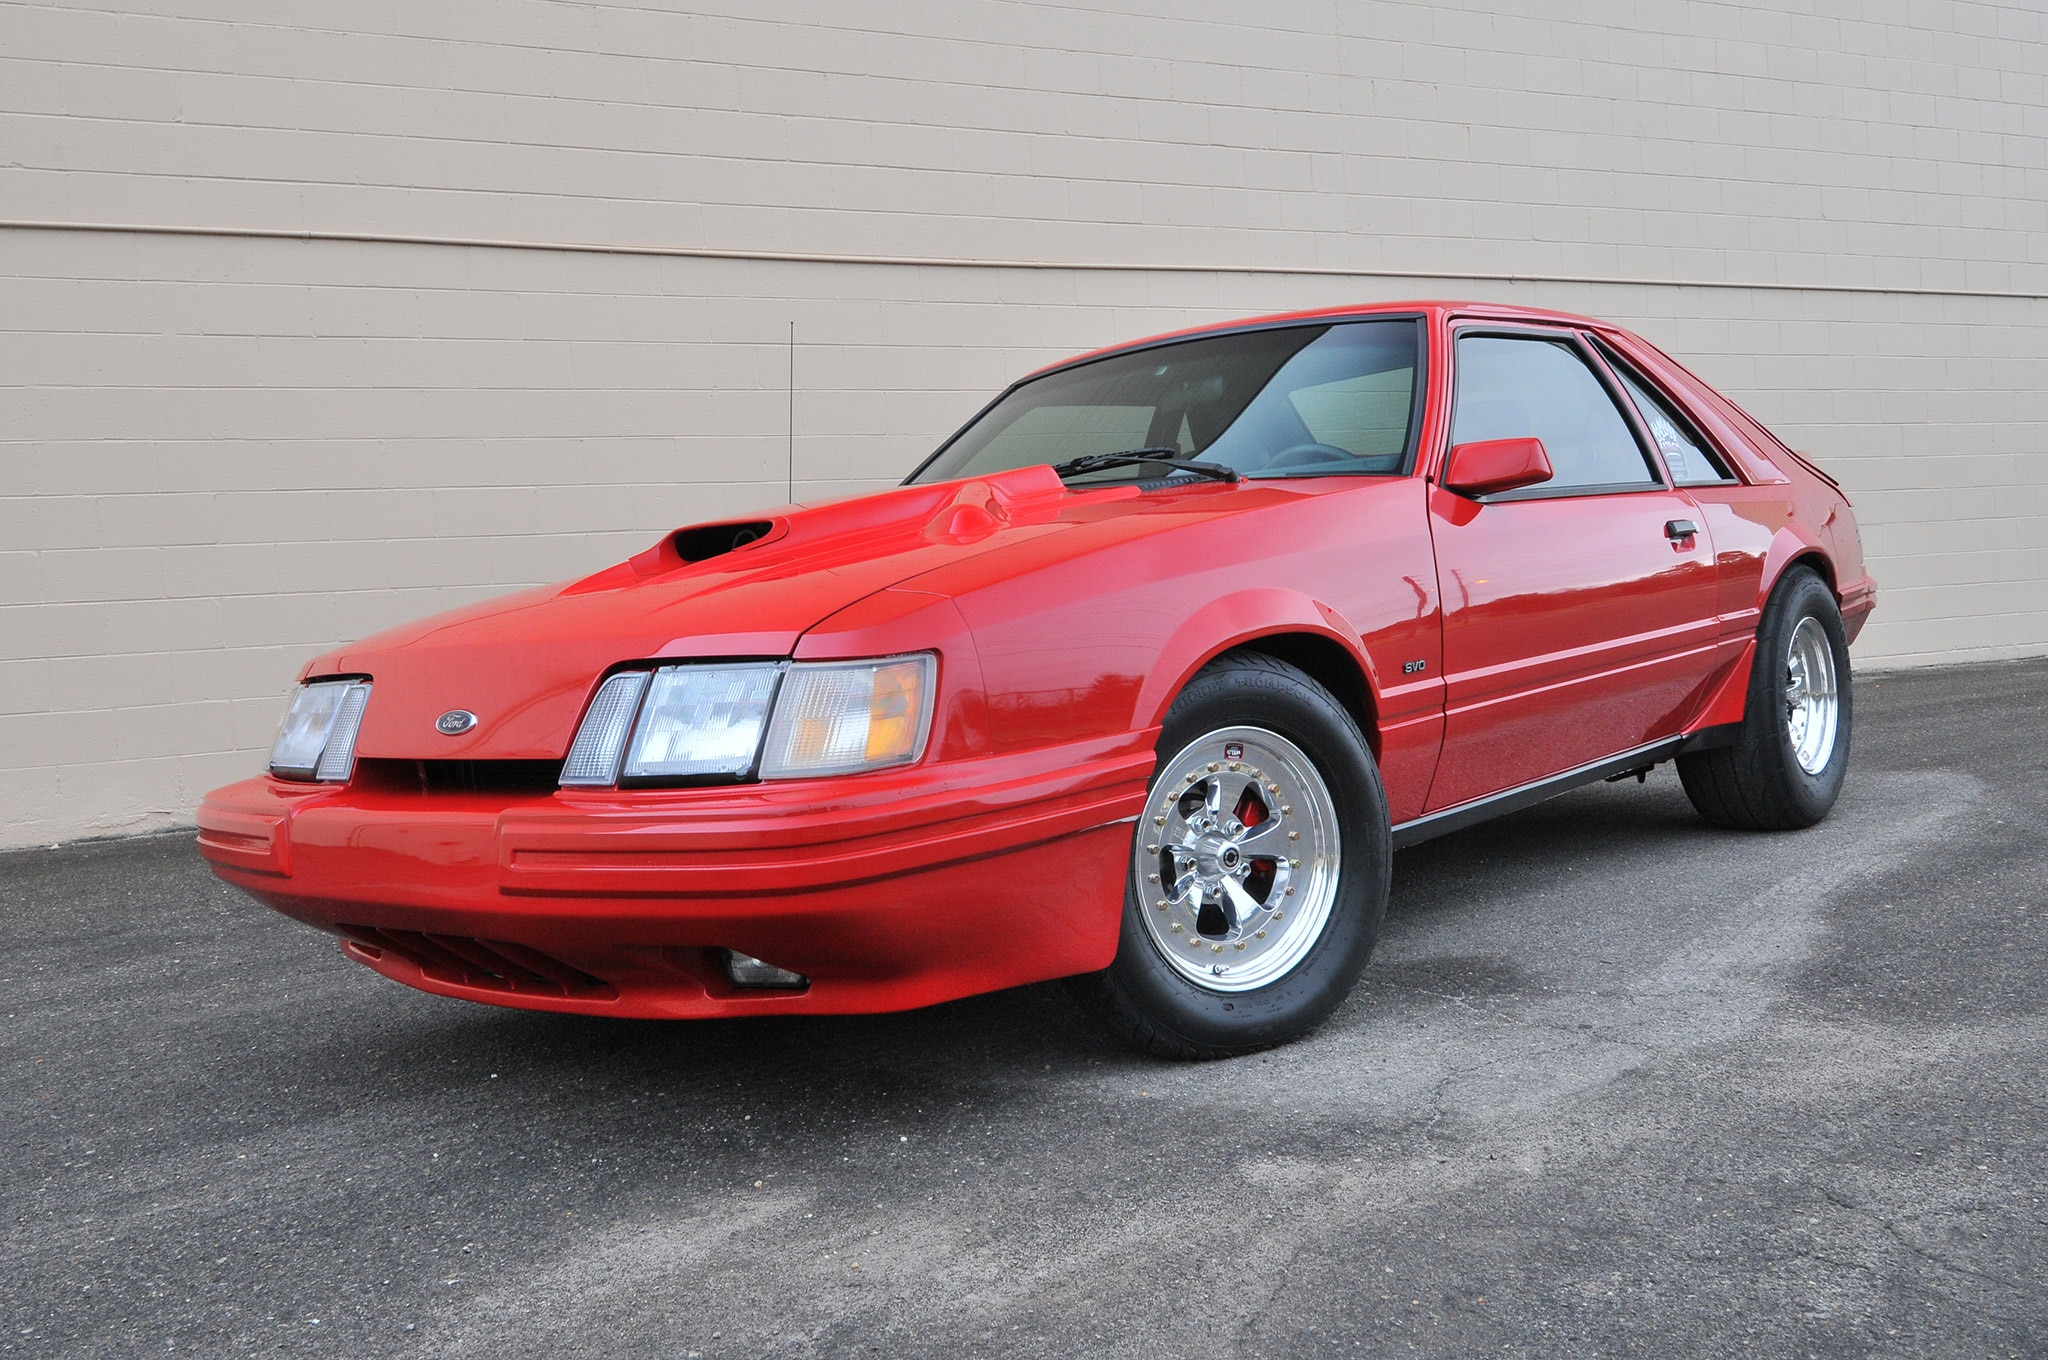 1986 Ford Mustang Svo Coyote Vermillion Red Front Quarter